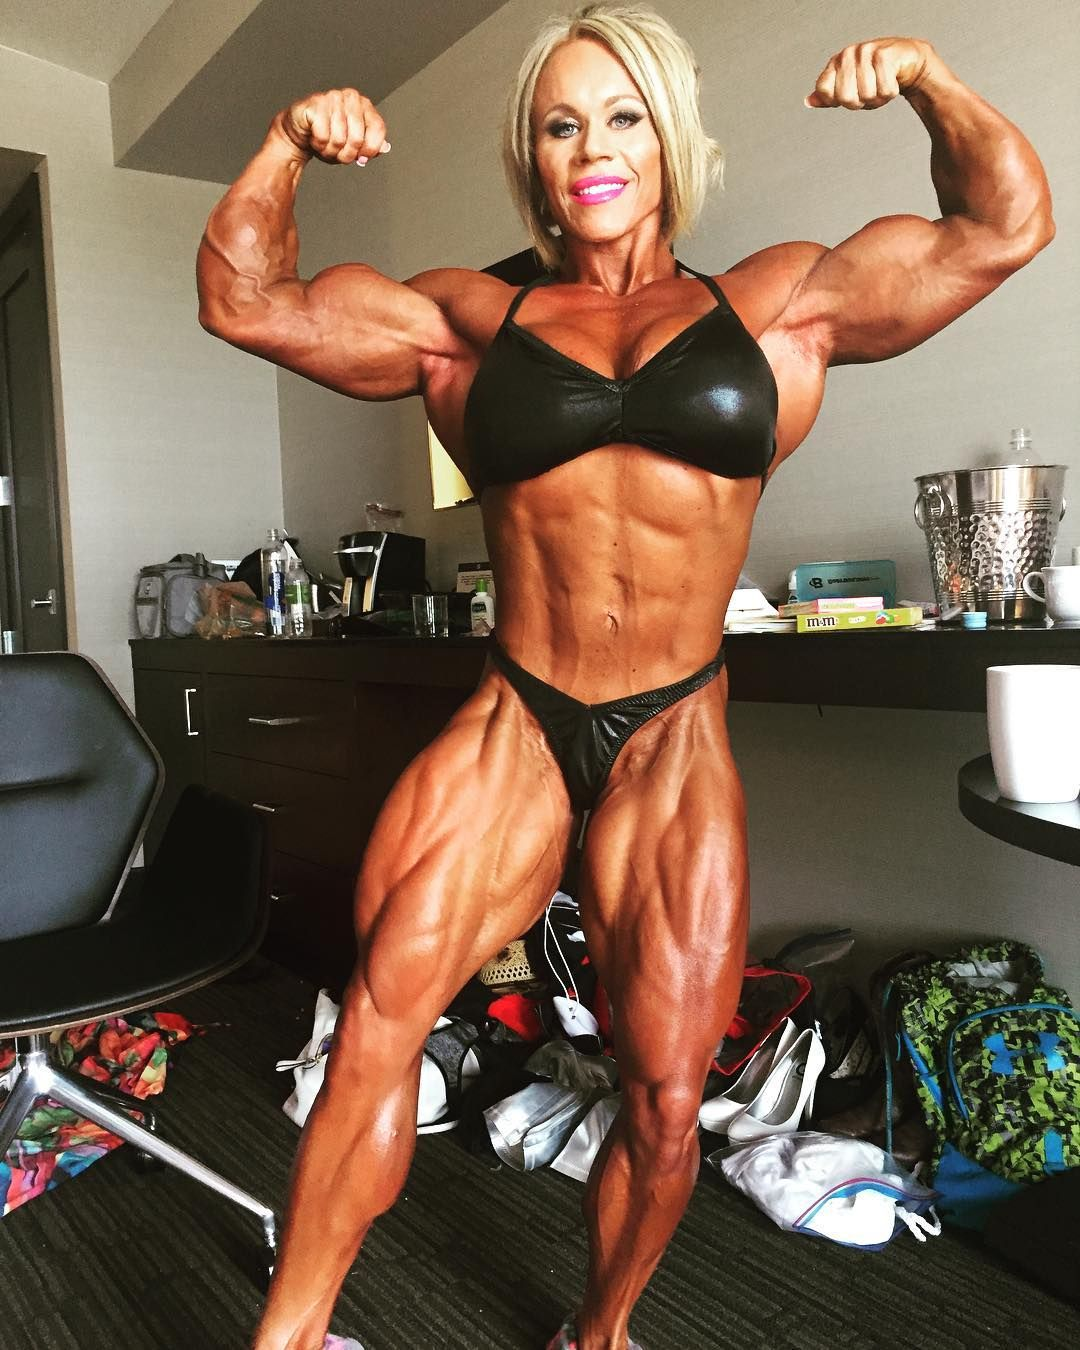 Aleesha Young Aleeshayoungfbb En Instagram Happy Flexfriday My Friends Fbb Femalebodybui Exercice Musculation Abdo Exercice Musculation Musculation Посмотрите твиты по теме «#fbb» в твиттере. aleesha young aleeshayoungfbb en